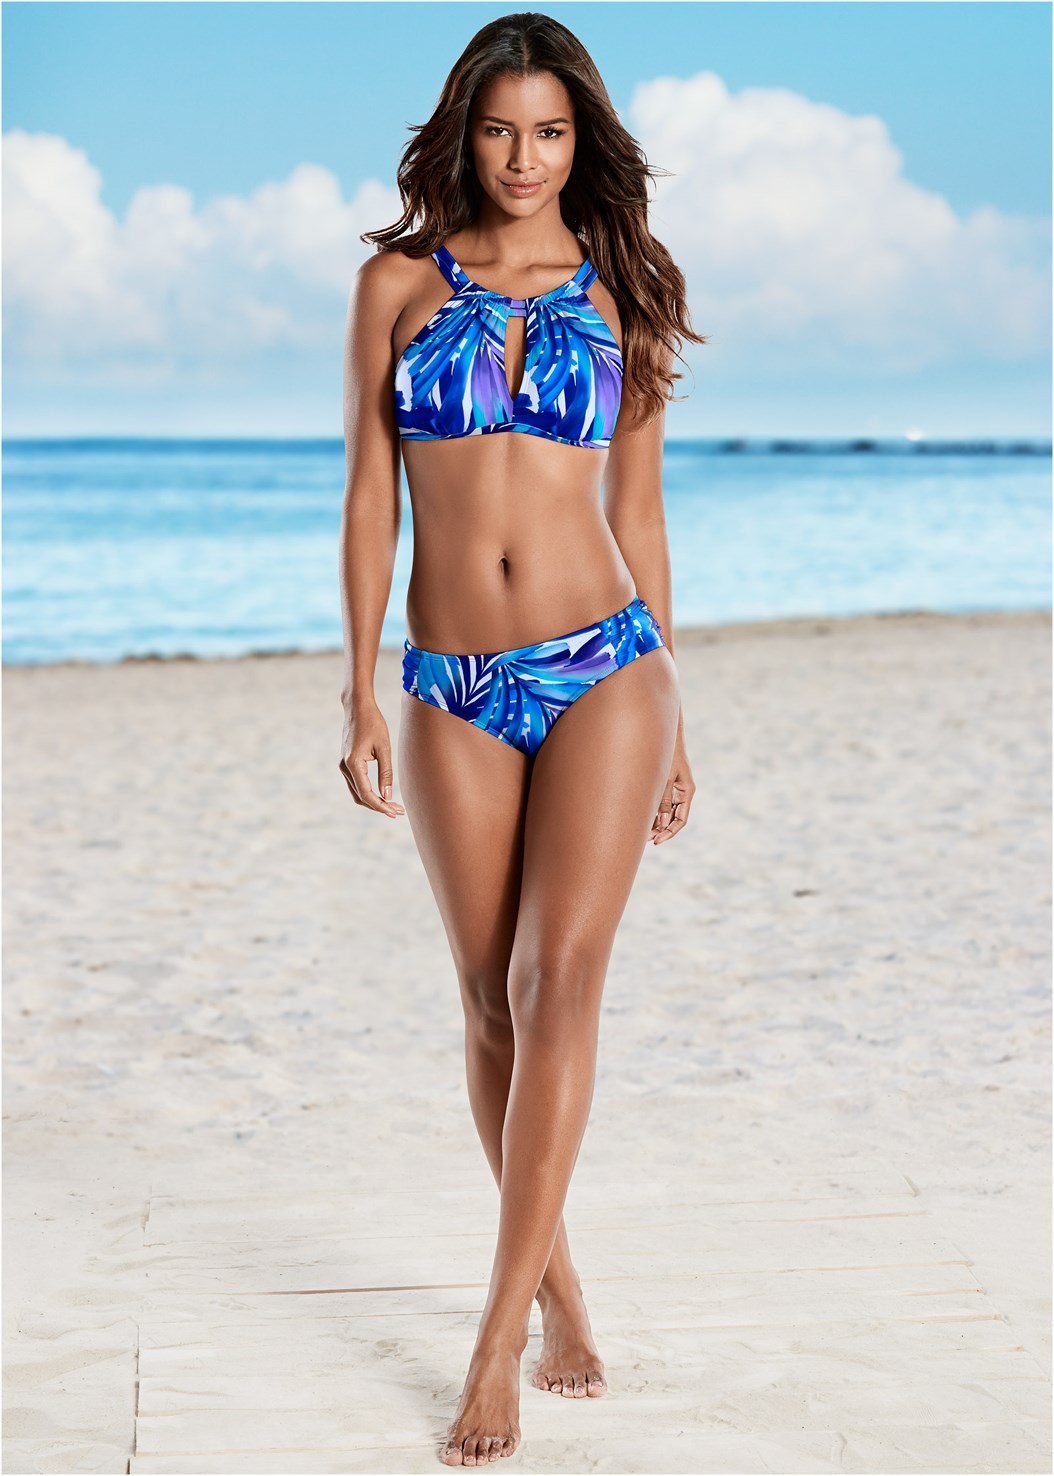 Ruched Low Rise Bottoms,Keyhole High Neck Top,Peephole Sport Top,Belted Tankini Top